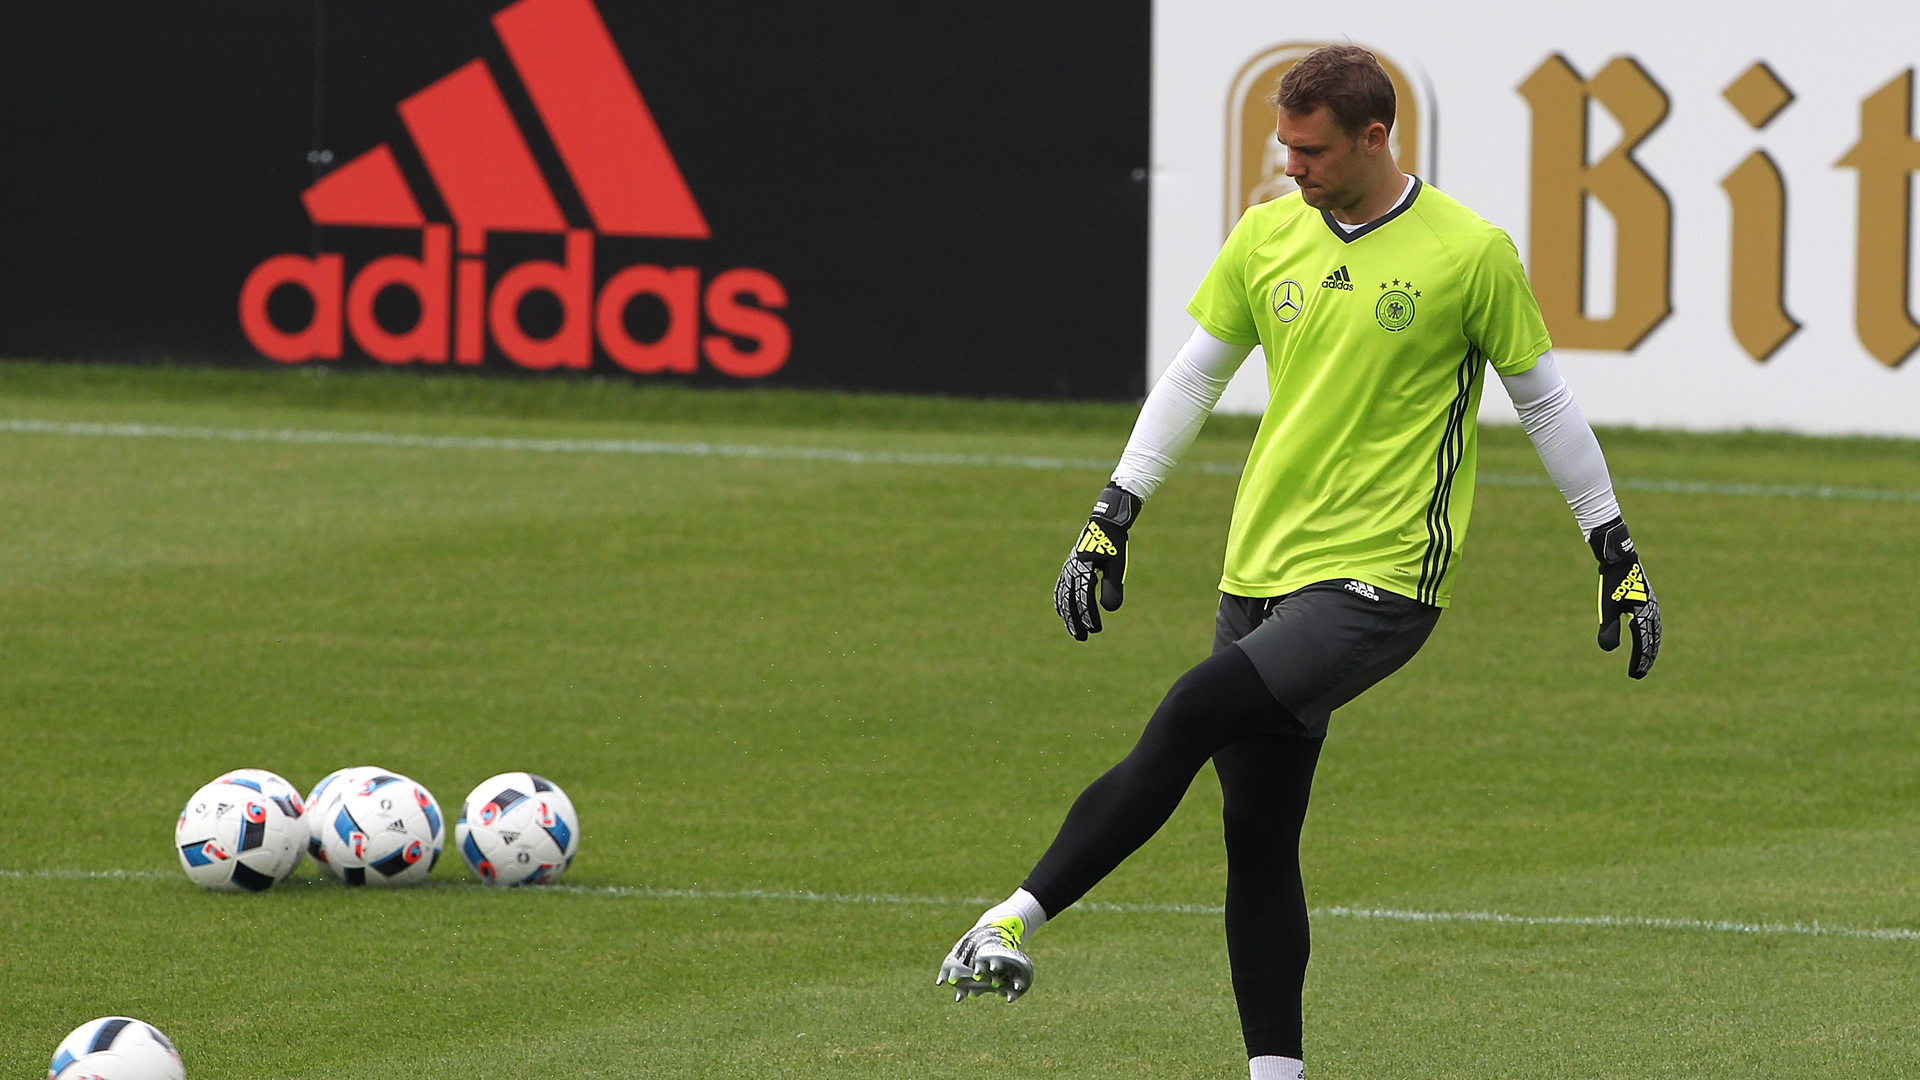 http://images.performgroup.com/di/library/goal_korea/cd/a9/manuel-neuer-germany_1bednd18bb4ct1k4whs5p3kr5m.jpg?t=-2047885238&w=620&h=430